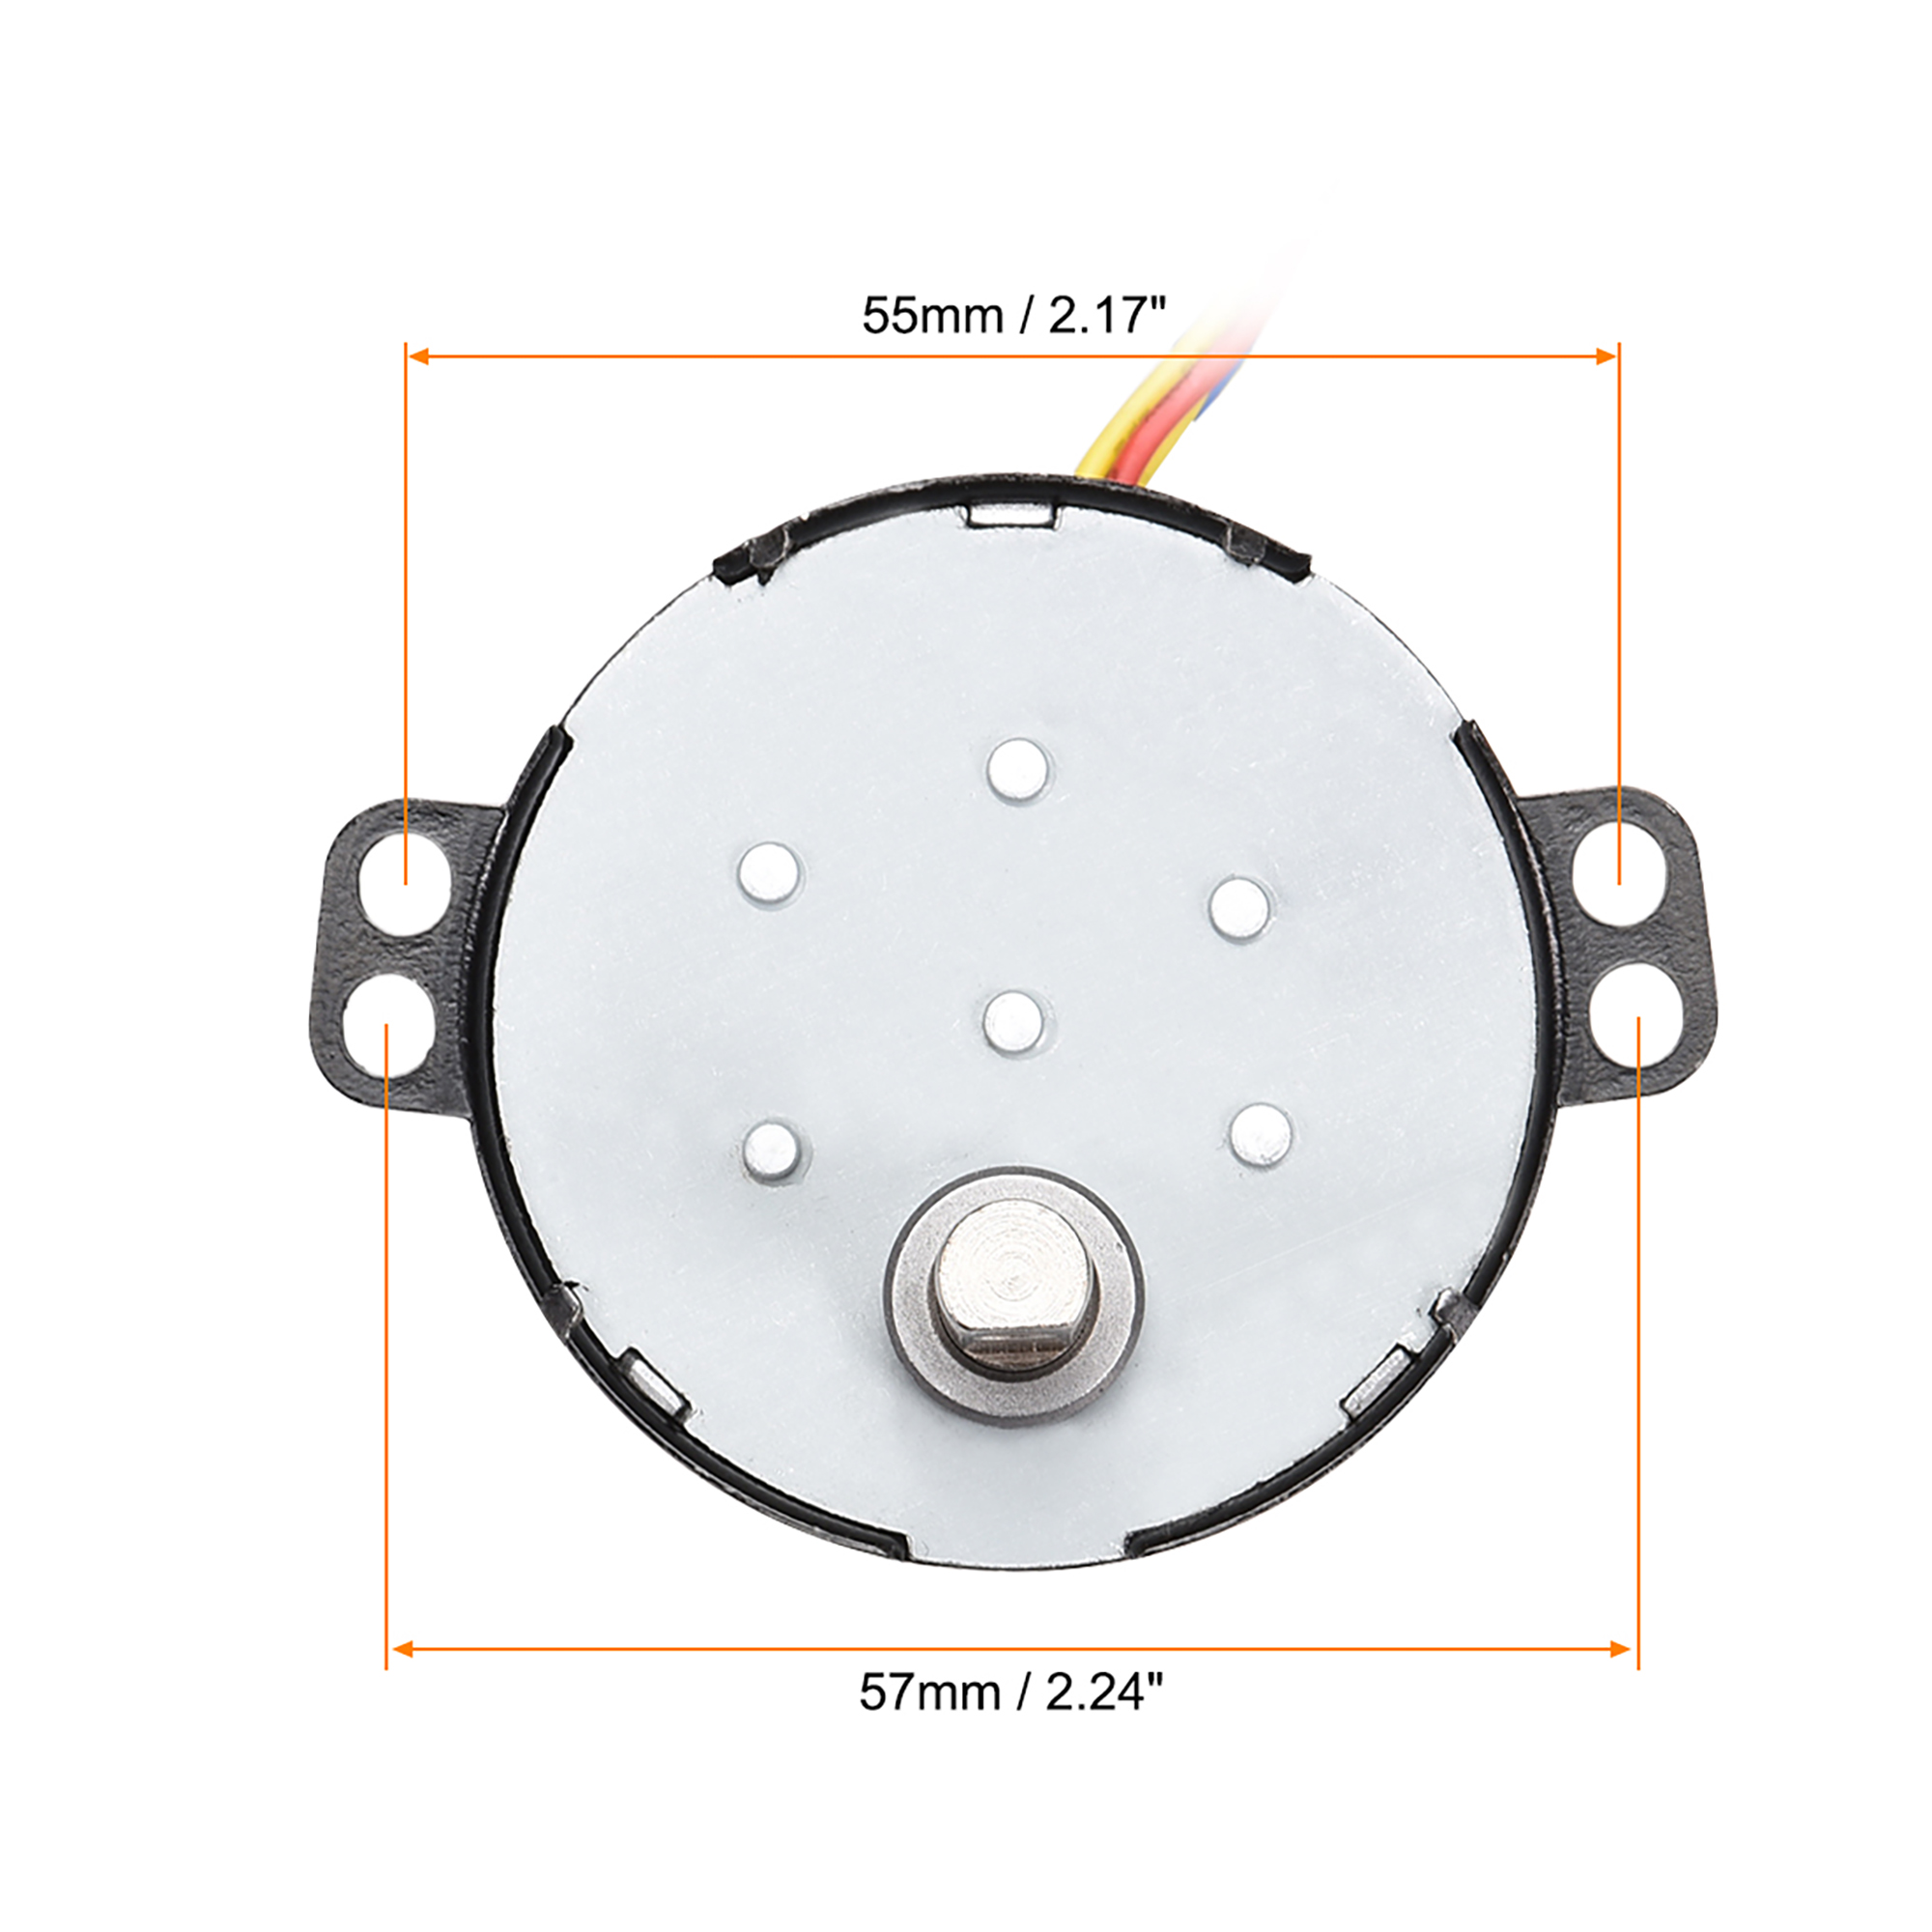 Details about  /AC110V Synchronous Motor Plastic Gear 30RPM 7mm Dia Eccentric Shaft with Hole